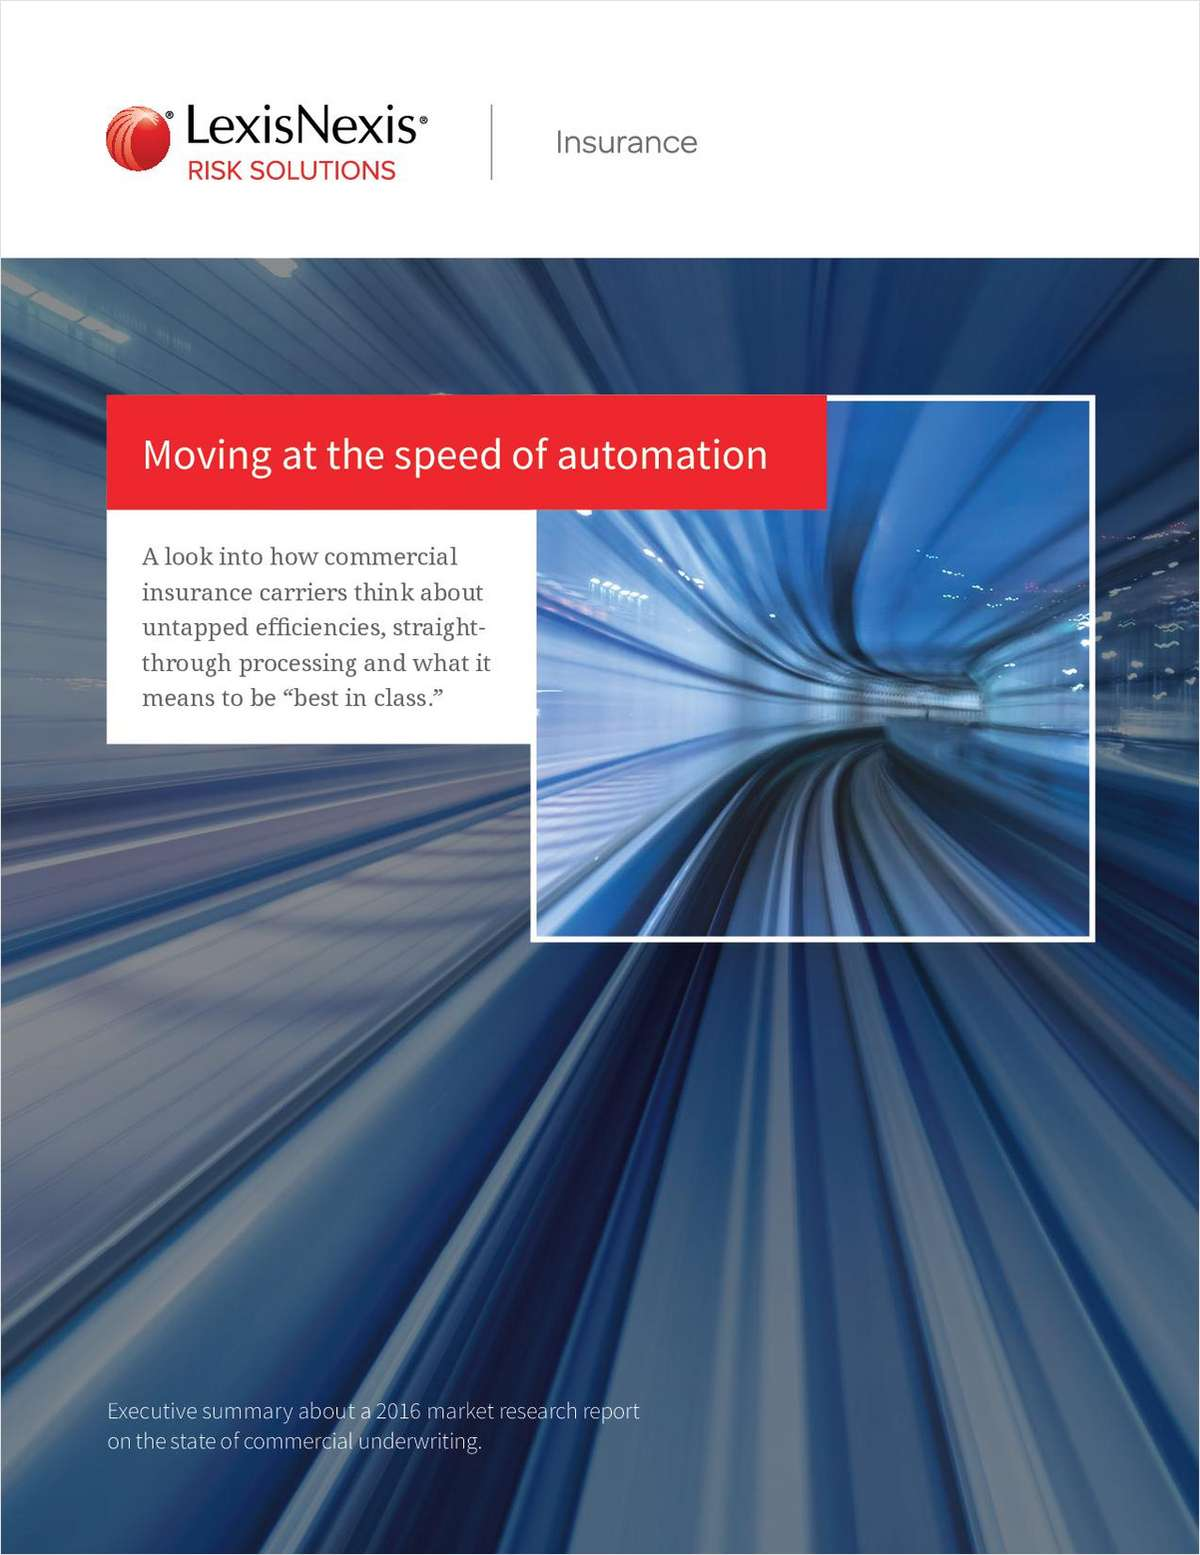 Moving at the Speed of Automation -- 'Best-in-Class' Underwriting